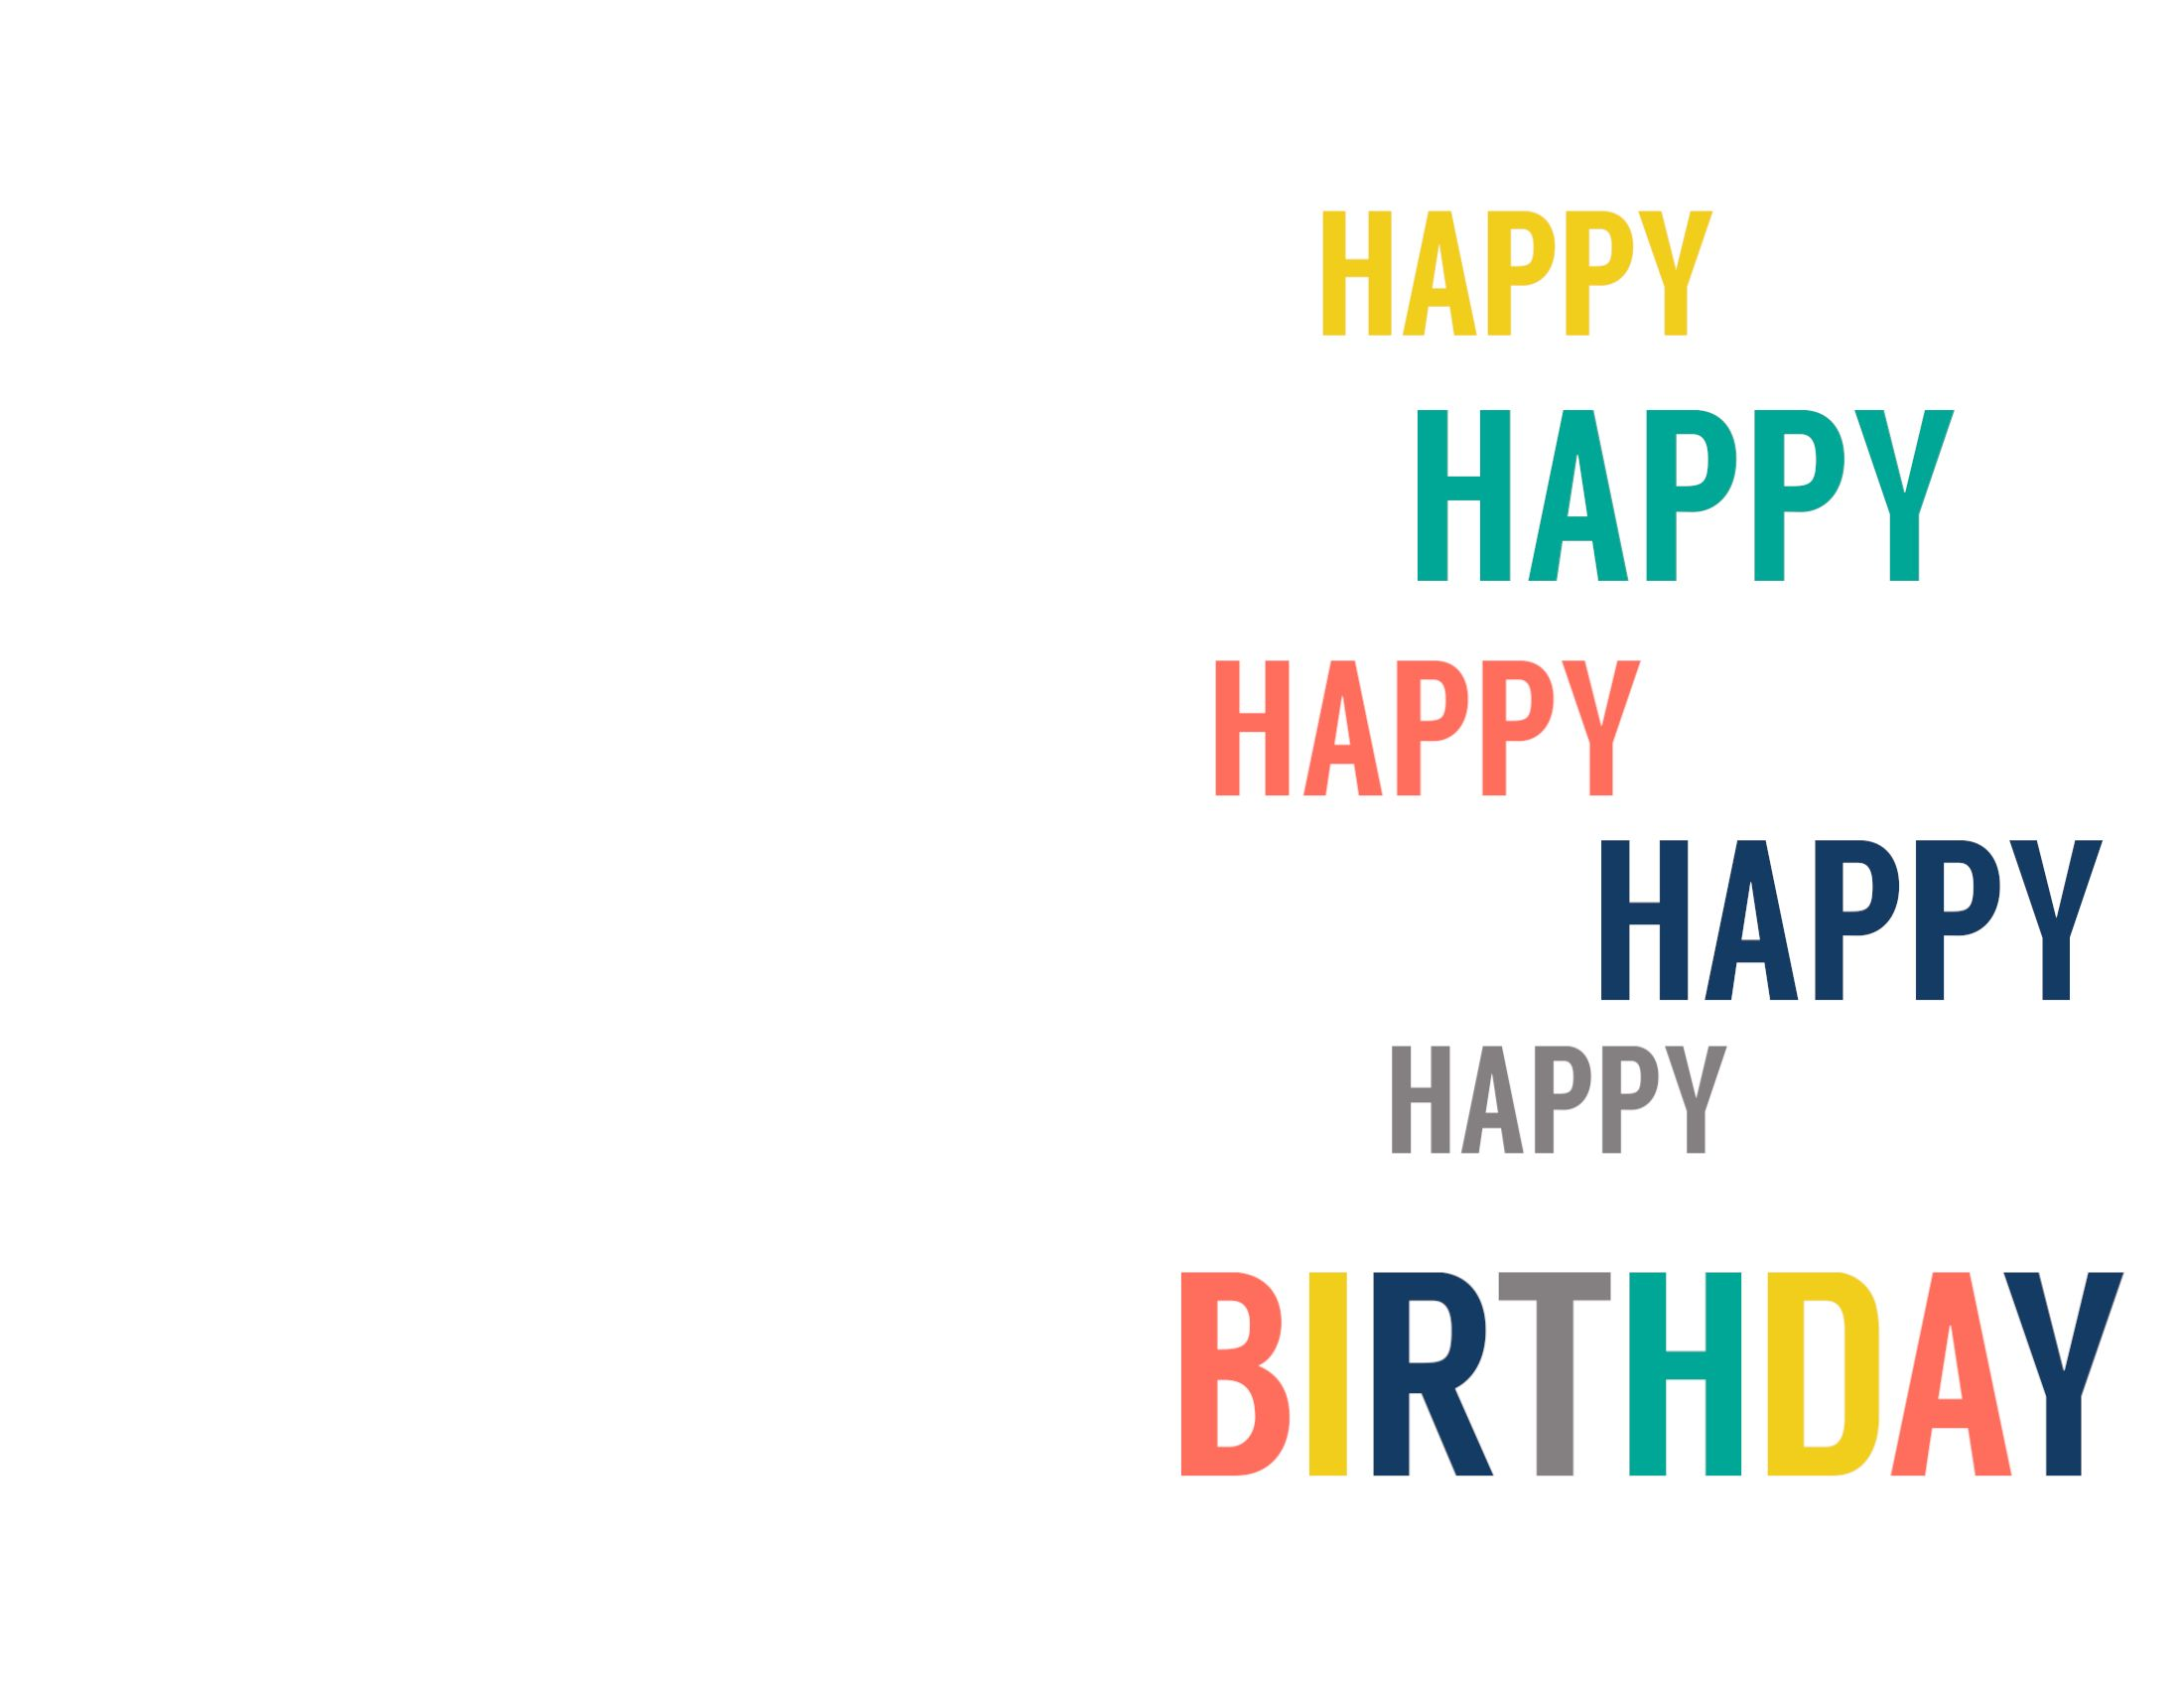 Google Image Result For Https Www Papertraildesign Com Wp Content Upload Free Printable Birthday Cards Happy Birthday Cards Printable Birthday Cards To Print